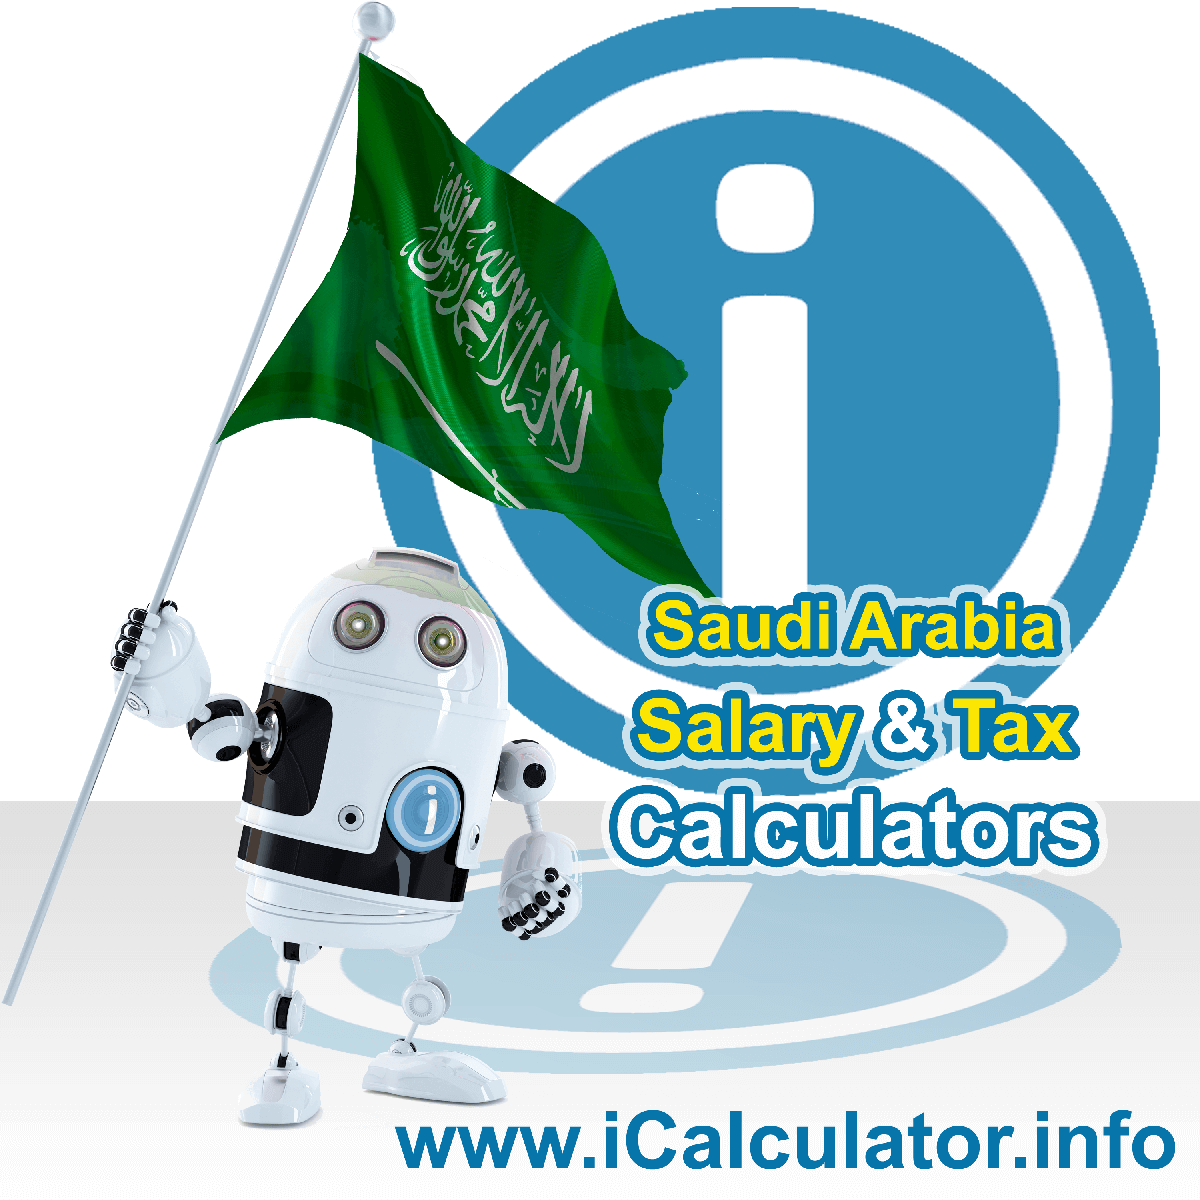 Saudi Arabia Tax Calculator. This image shows the Saudi Arabia flag and information relating to the tax formula for the Saudi Arabia Salary Calculator